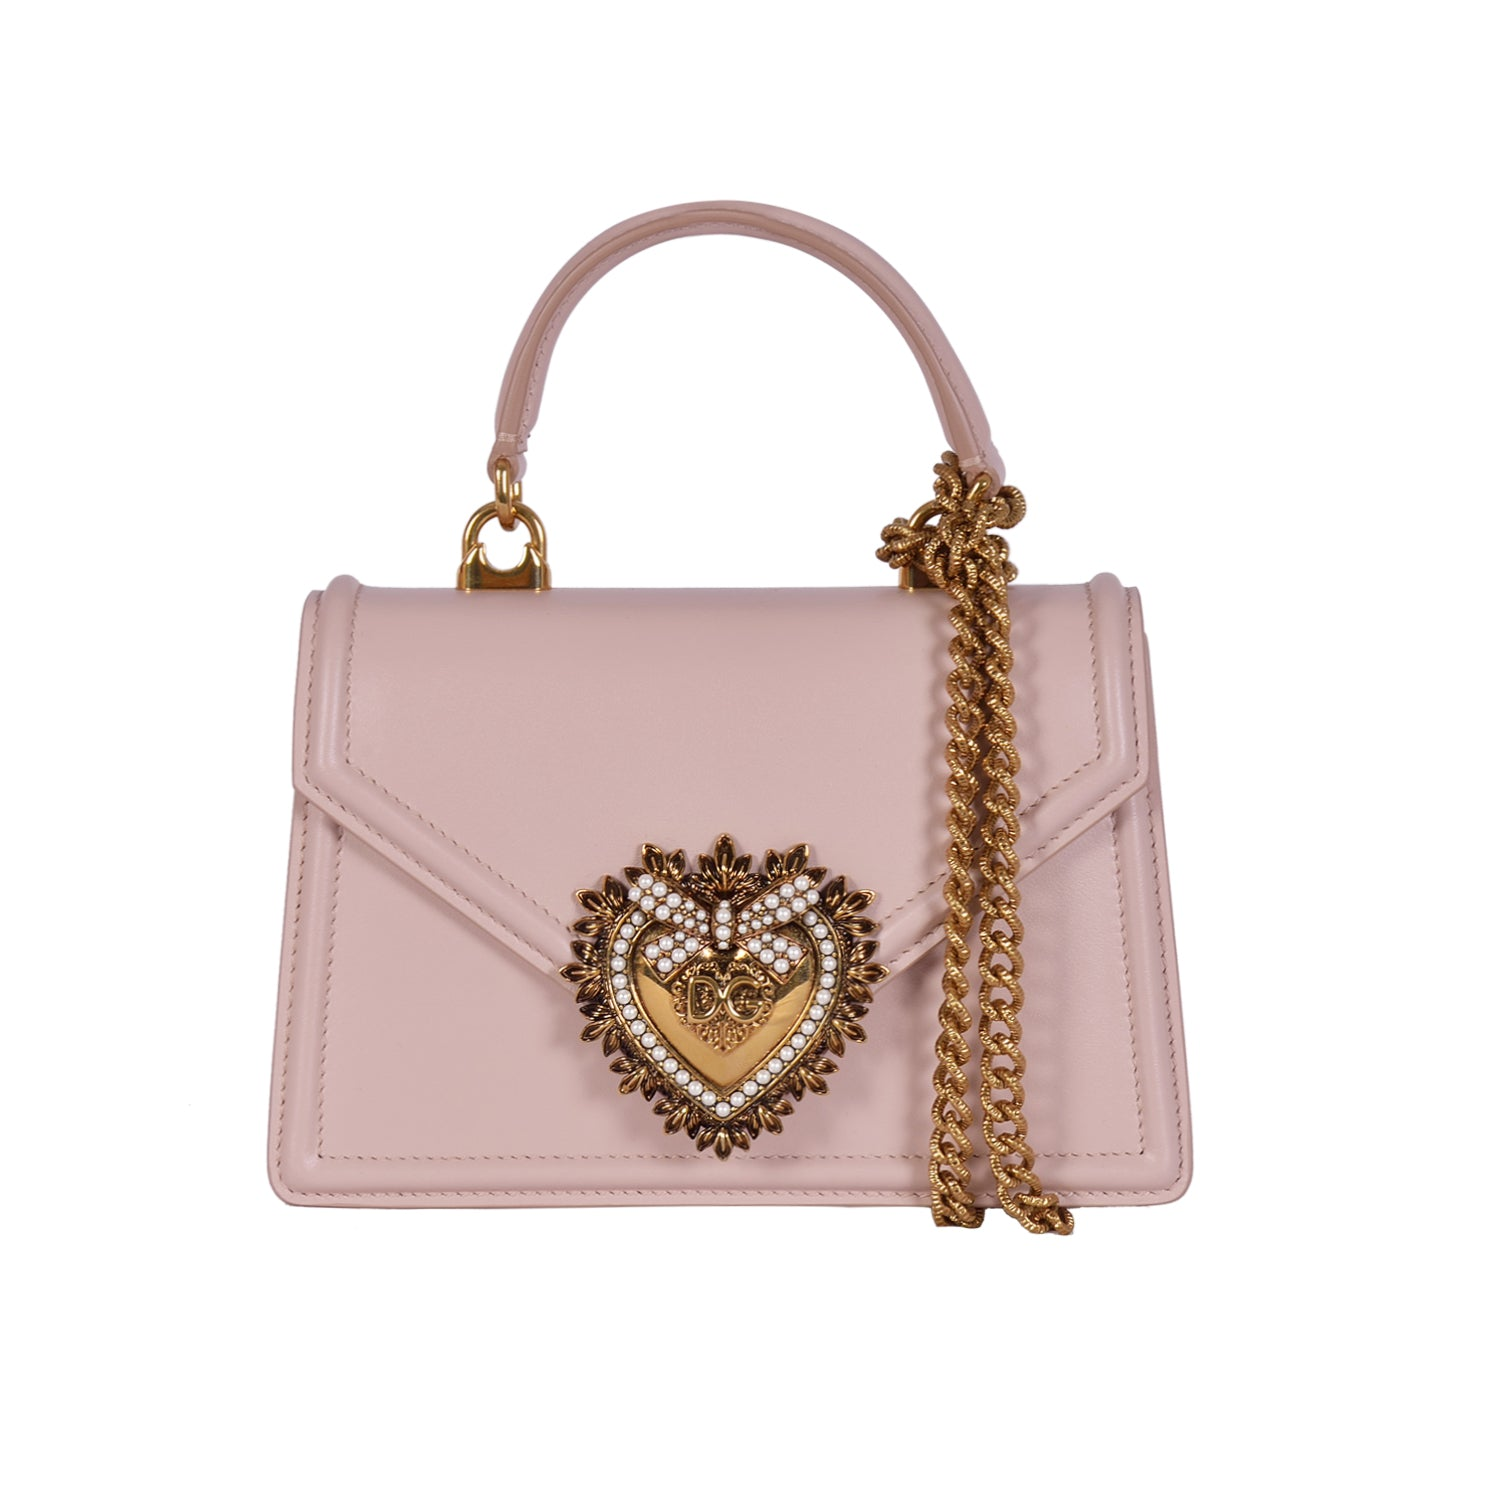 DOLCE & GABBANA Pink Devotion Medium Flap Bag